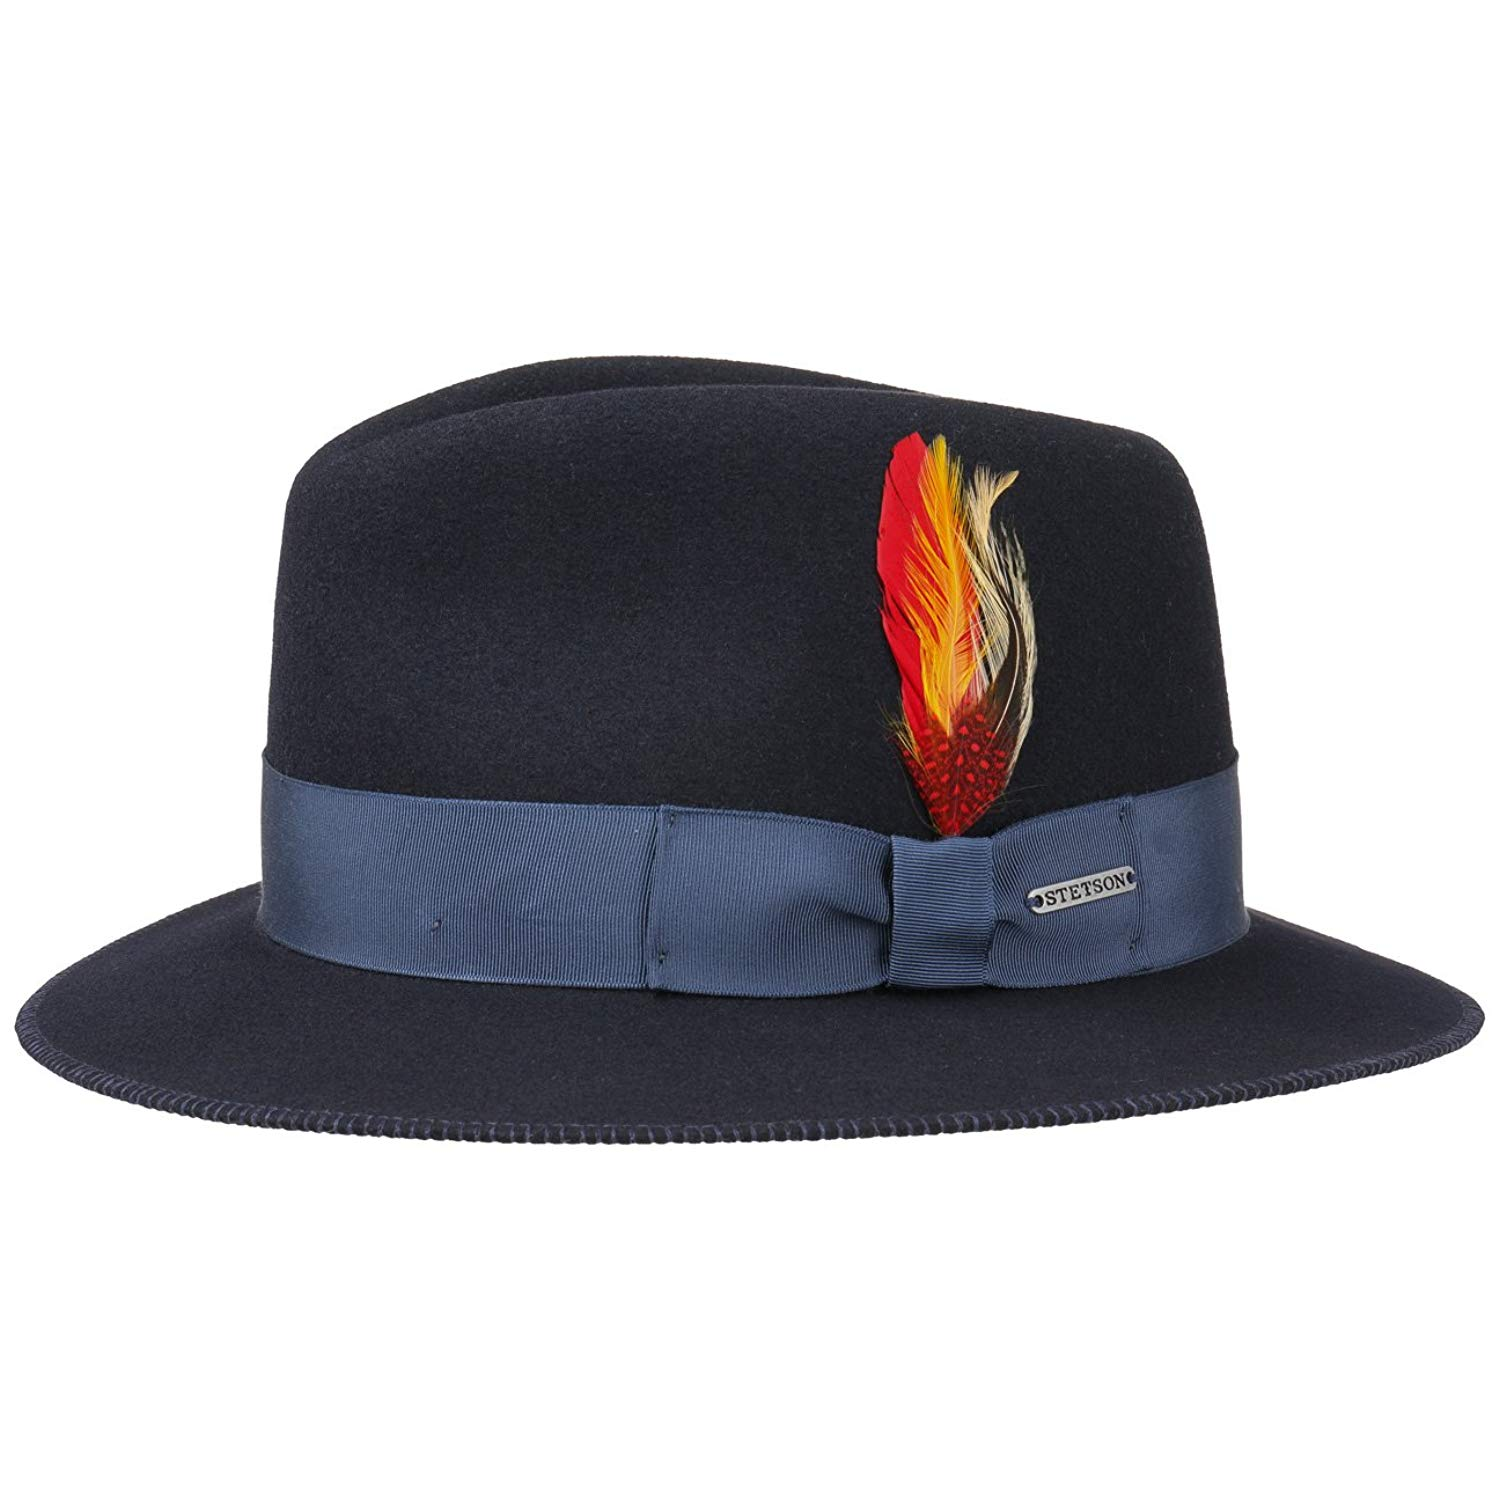 f8ced2261021d Cheap Stetson Fedora, find Stetson Fedora deals on line at Alibaba.com